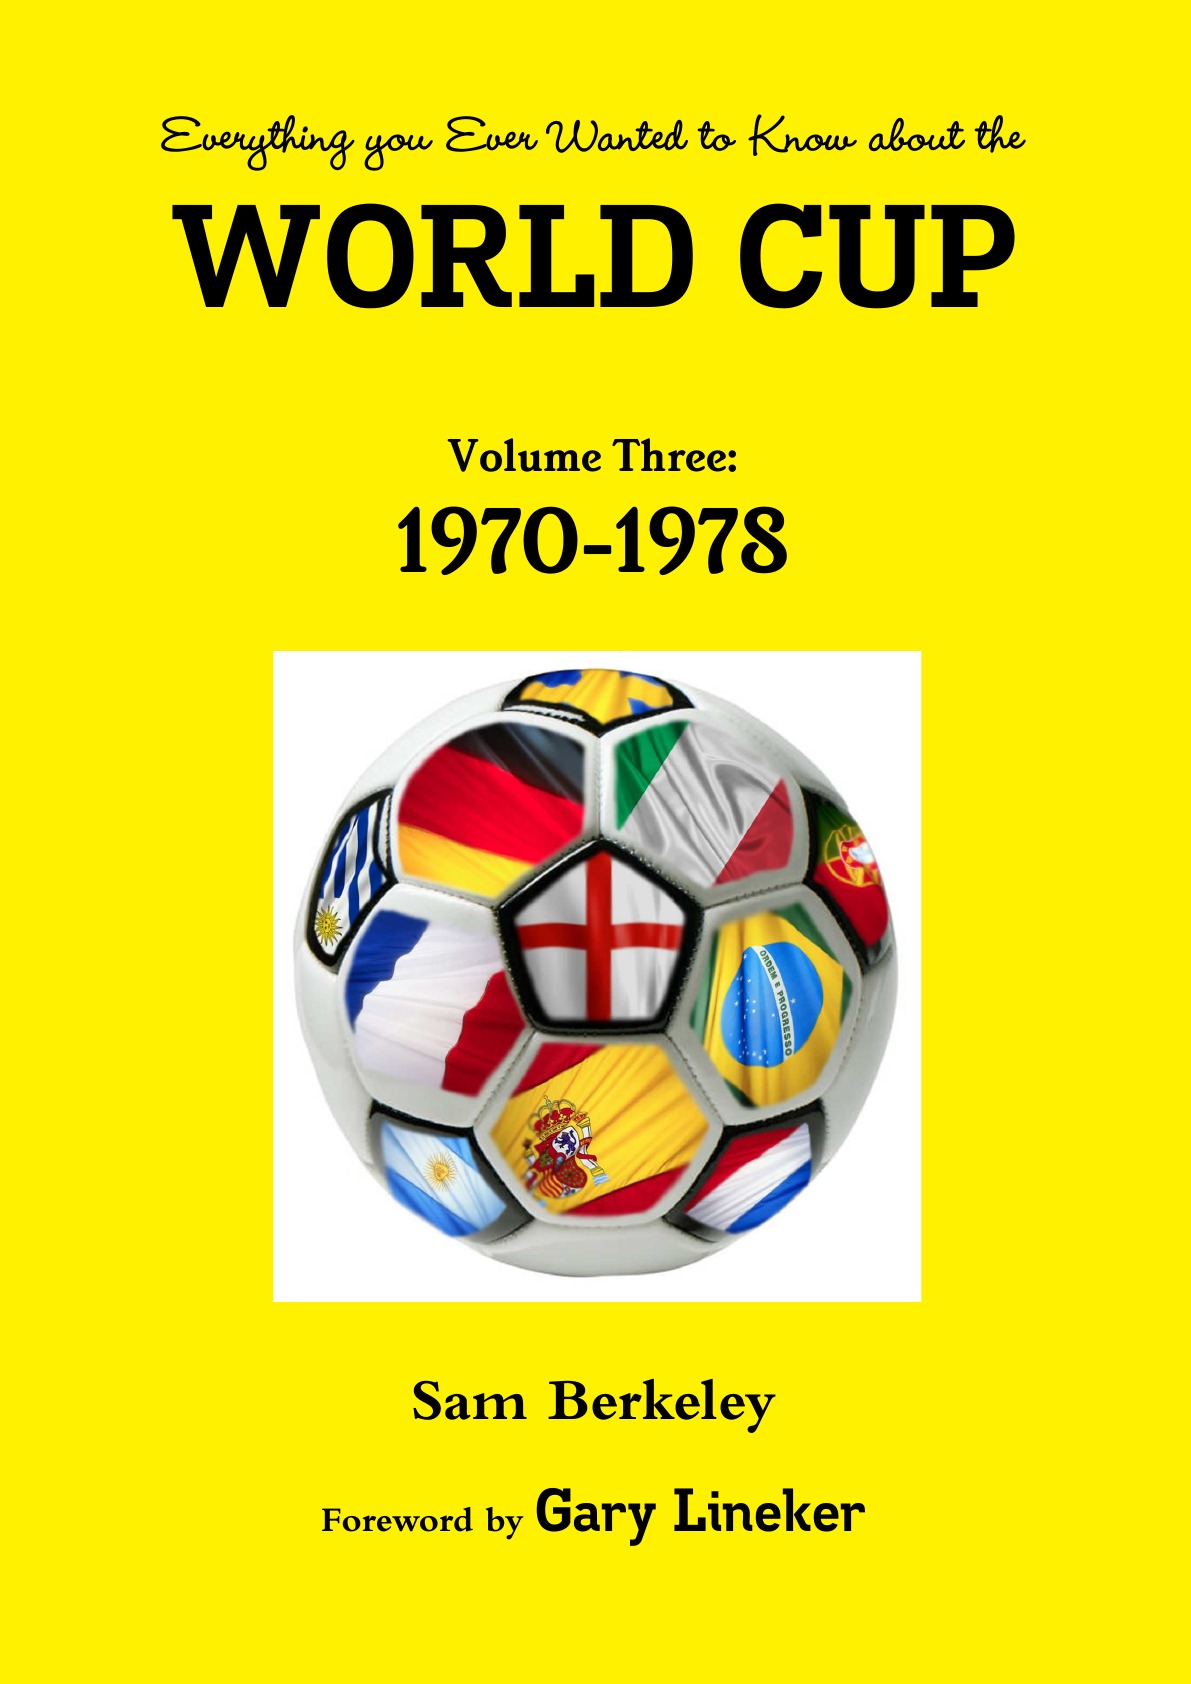 Sam Berkeley Everything you Ever Wanted to Know about the World Cup Volume Three. 1970-1978